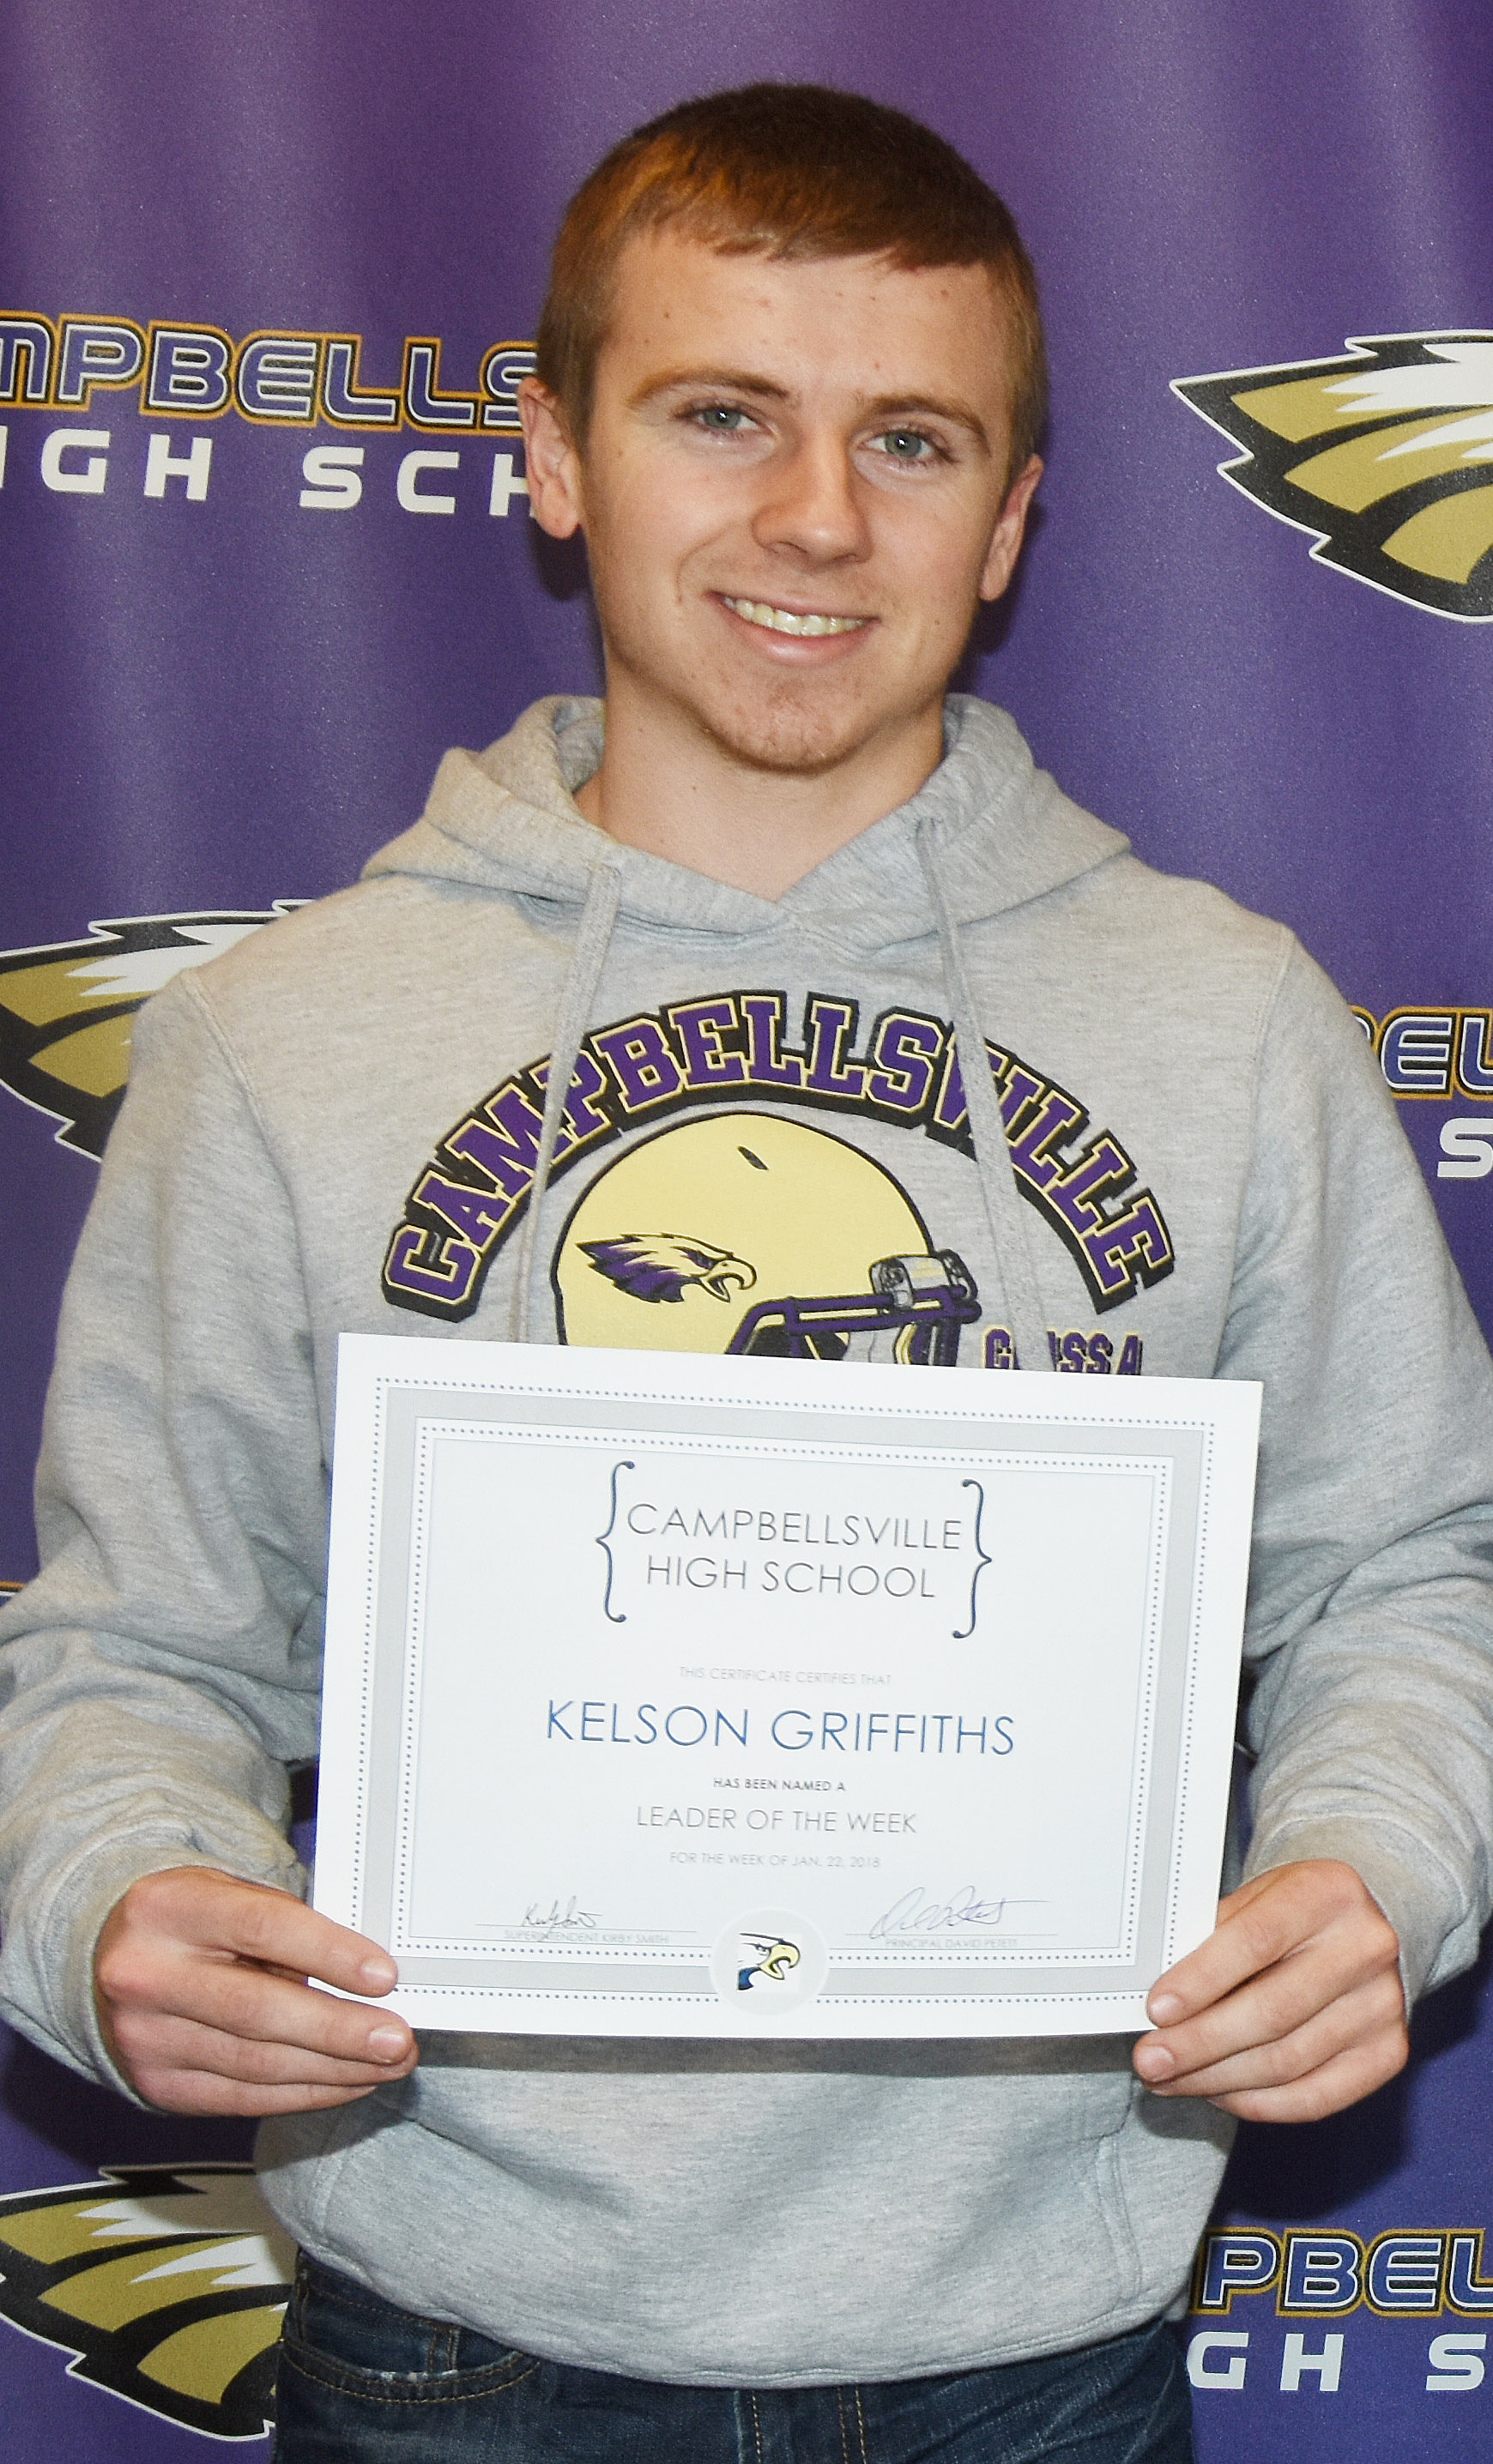 CHS sophomore Kelson Griffiths was named a Leader of the Week for the week of Jan. 22.